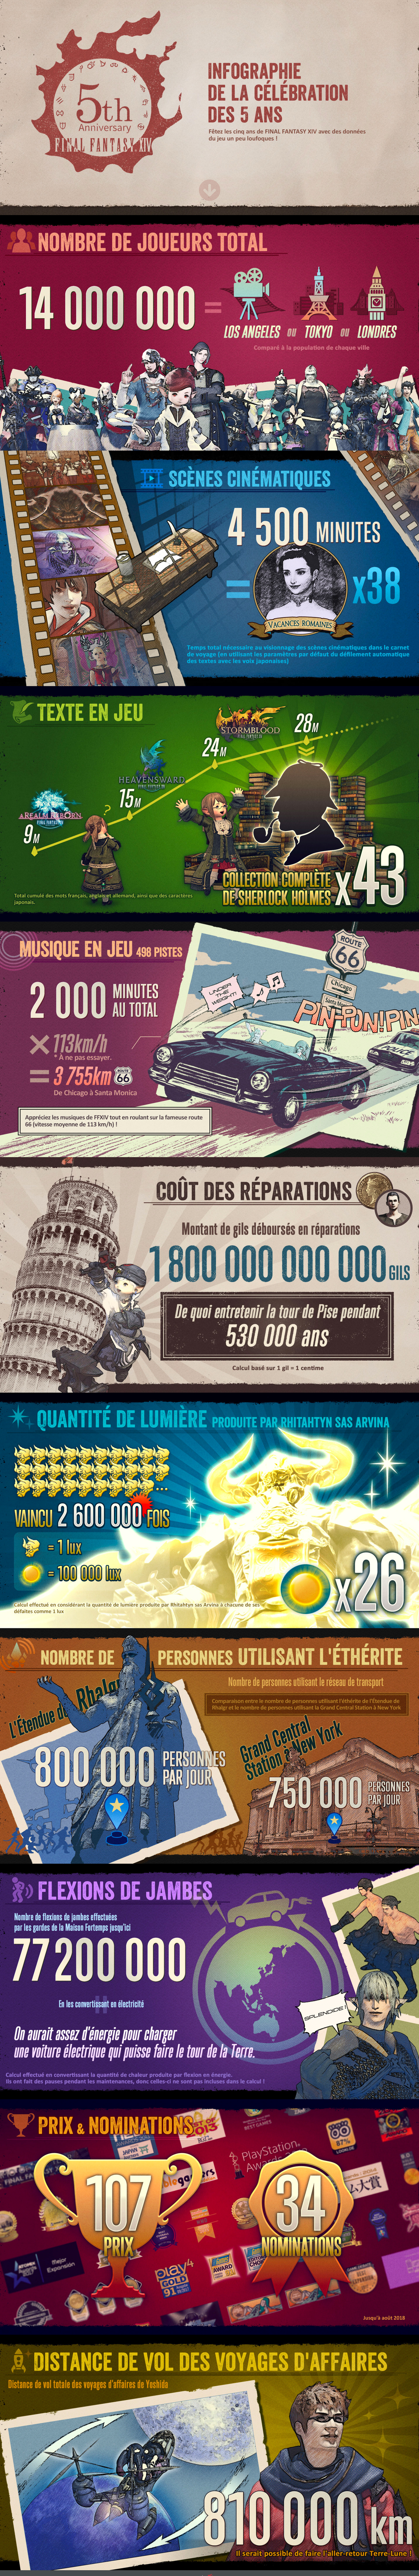 FFXIV-Infographie5ANS